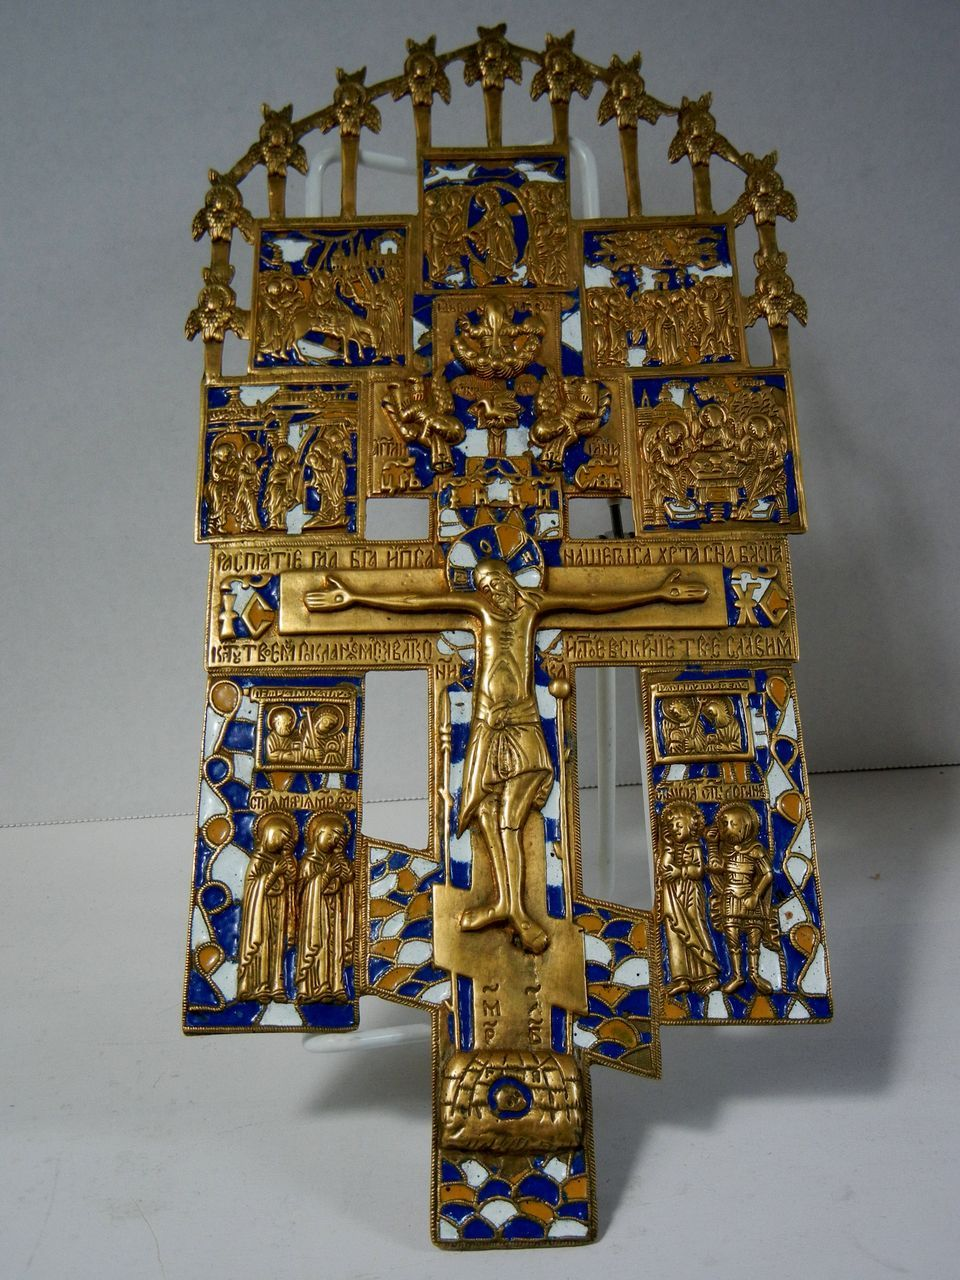 Antique Russian Gilt Bronze and Enamel Icon 18th or 19th century